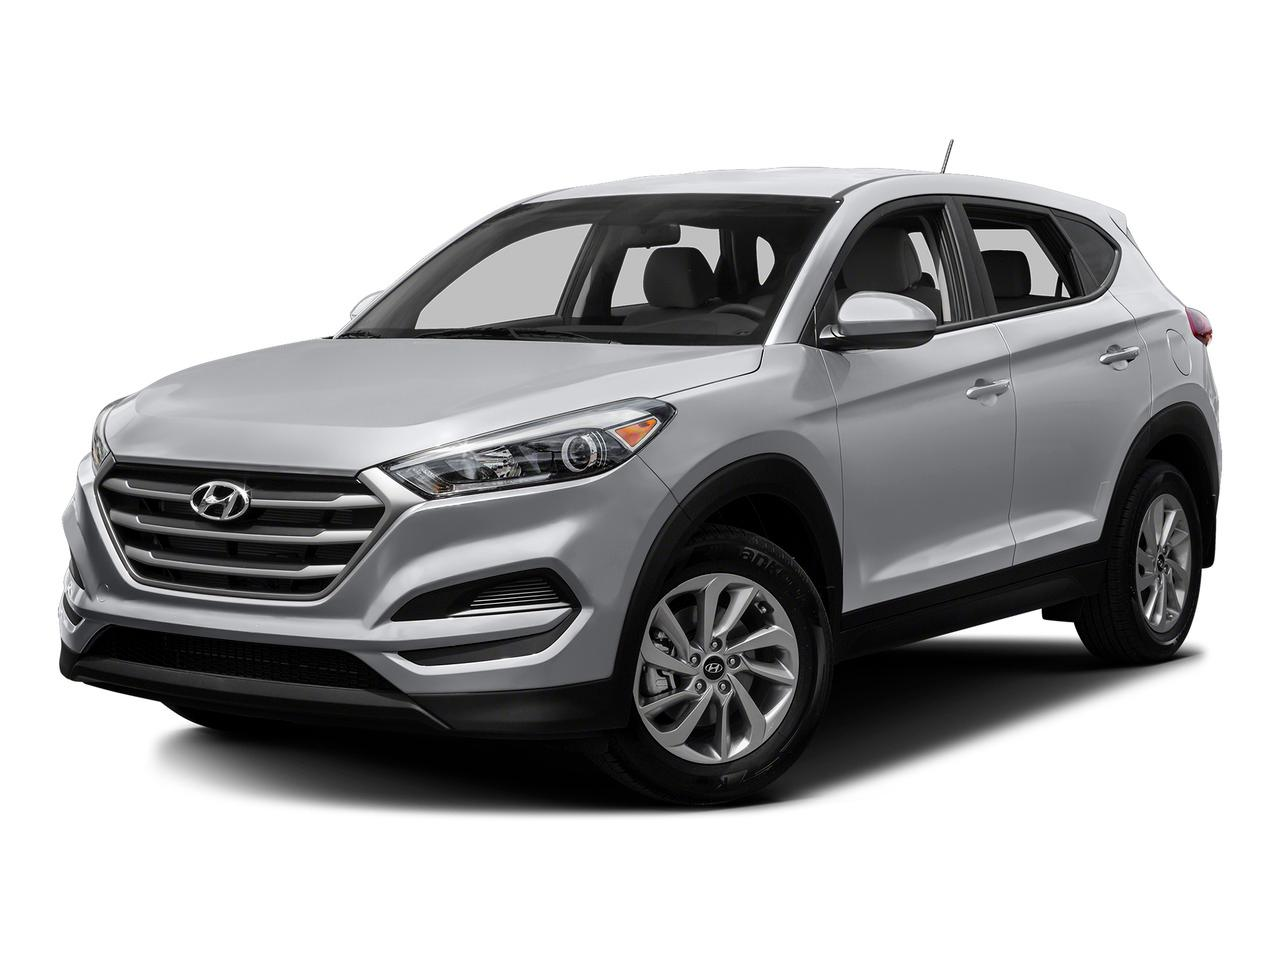 2016 Hyundai Tucson Vehicle Photo in Odessa, TX 79762